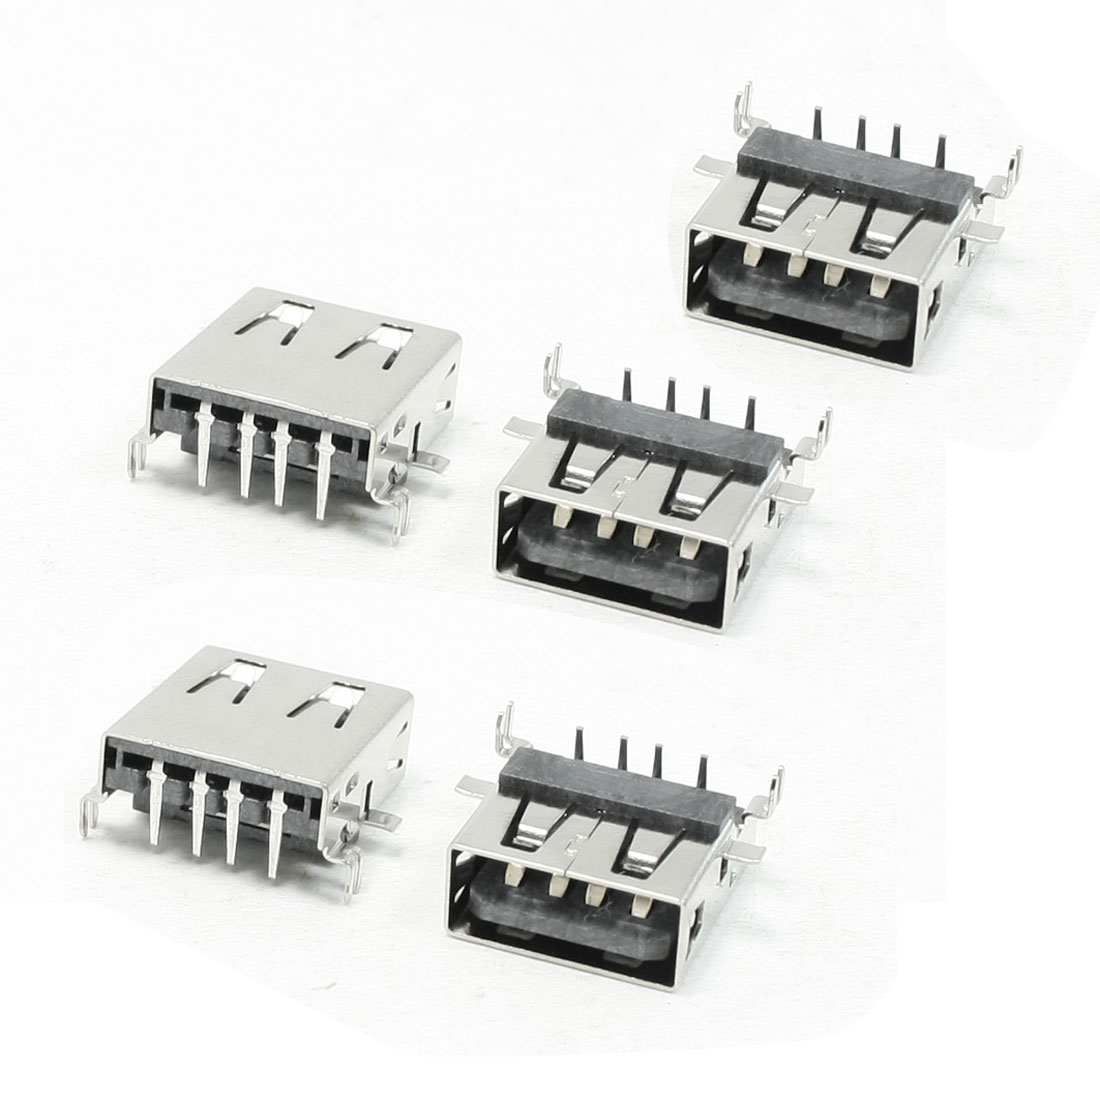 5 Pieces USB2.0 Type A Female Jack Right Angle PCB Mount Port